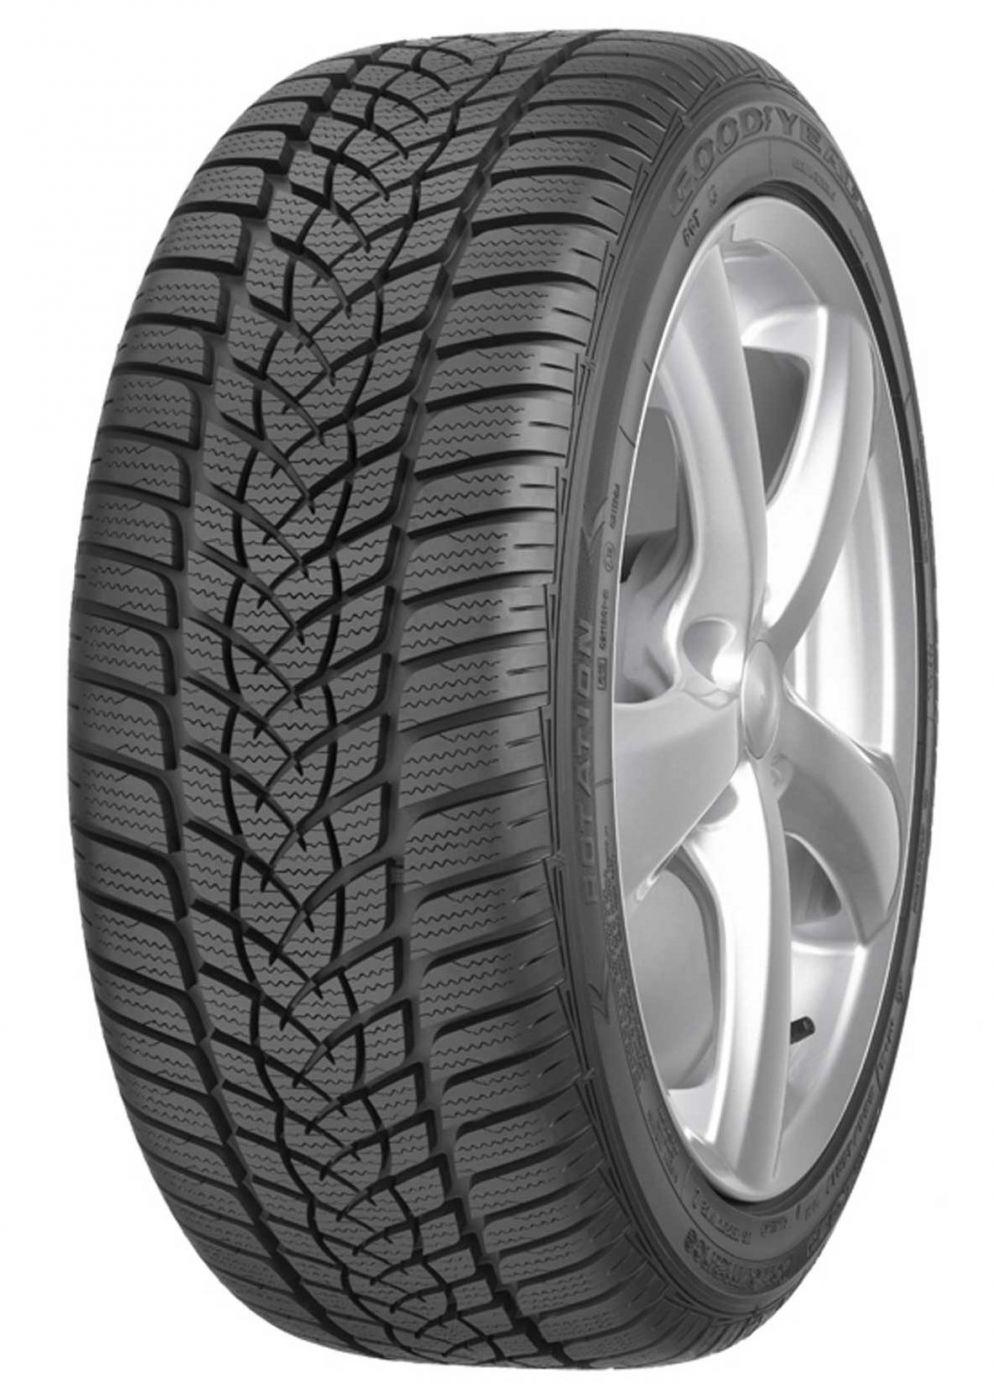 Goodyear 255/50/21  H 106 UG PERFORMANCE 2  Run On Flat